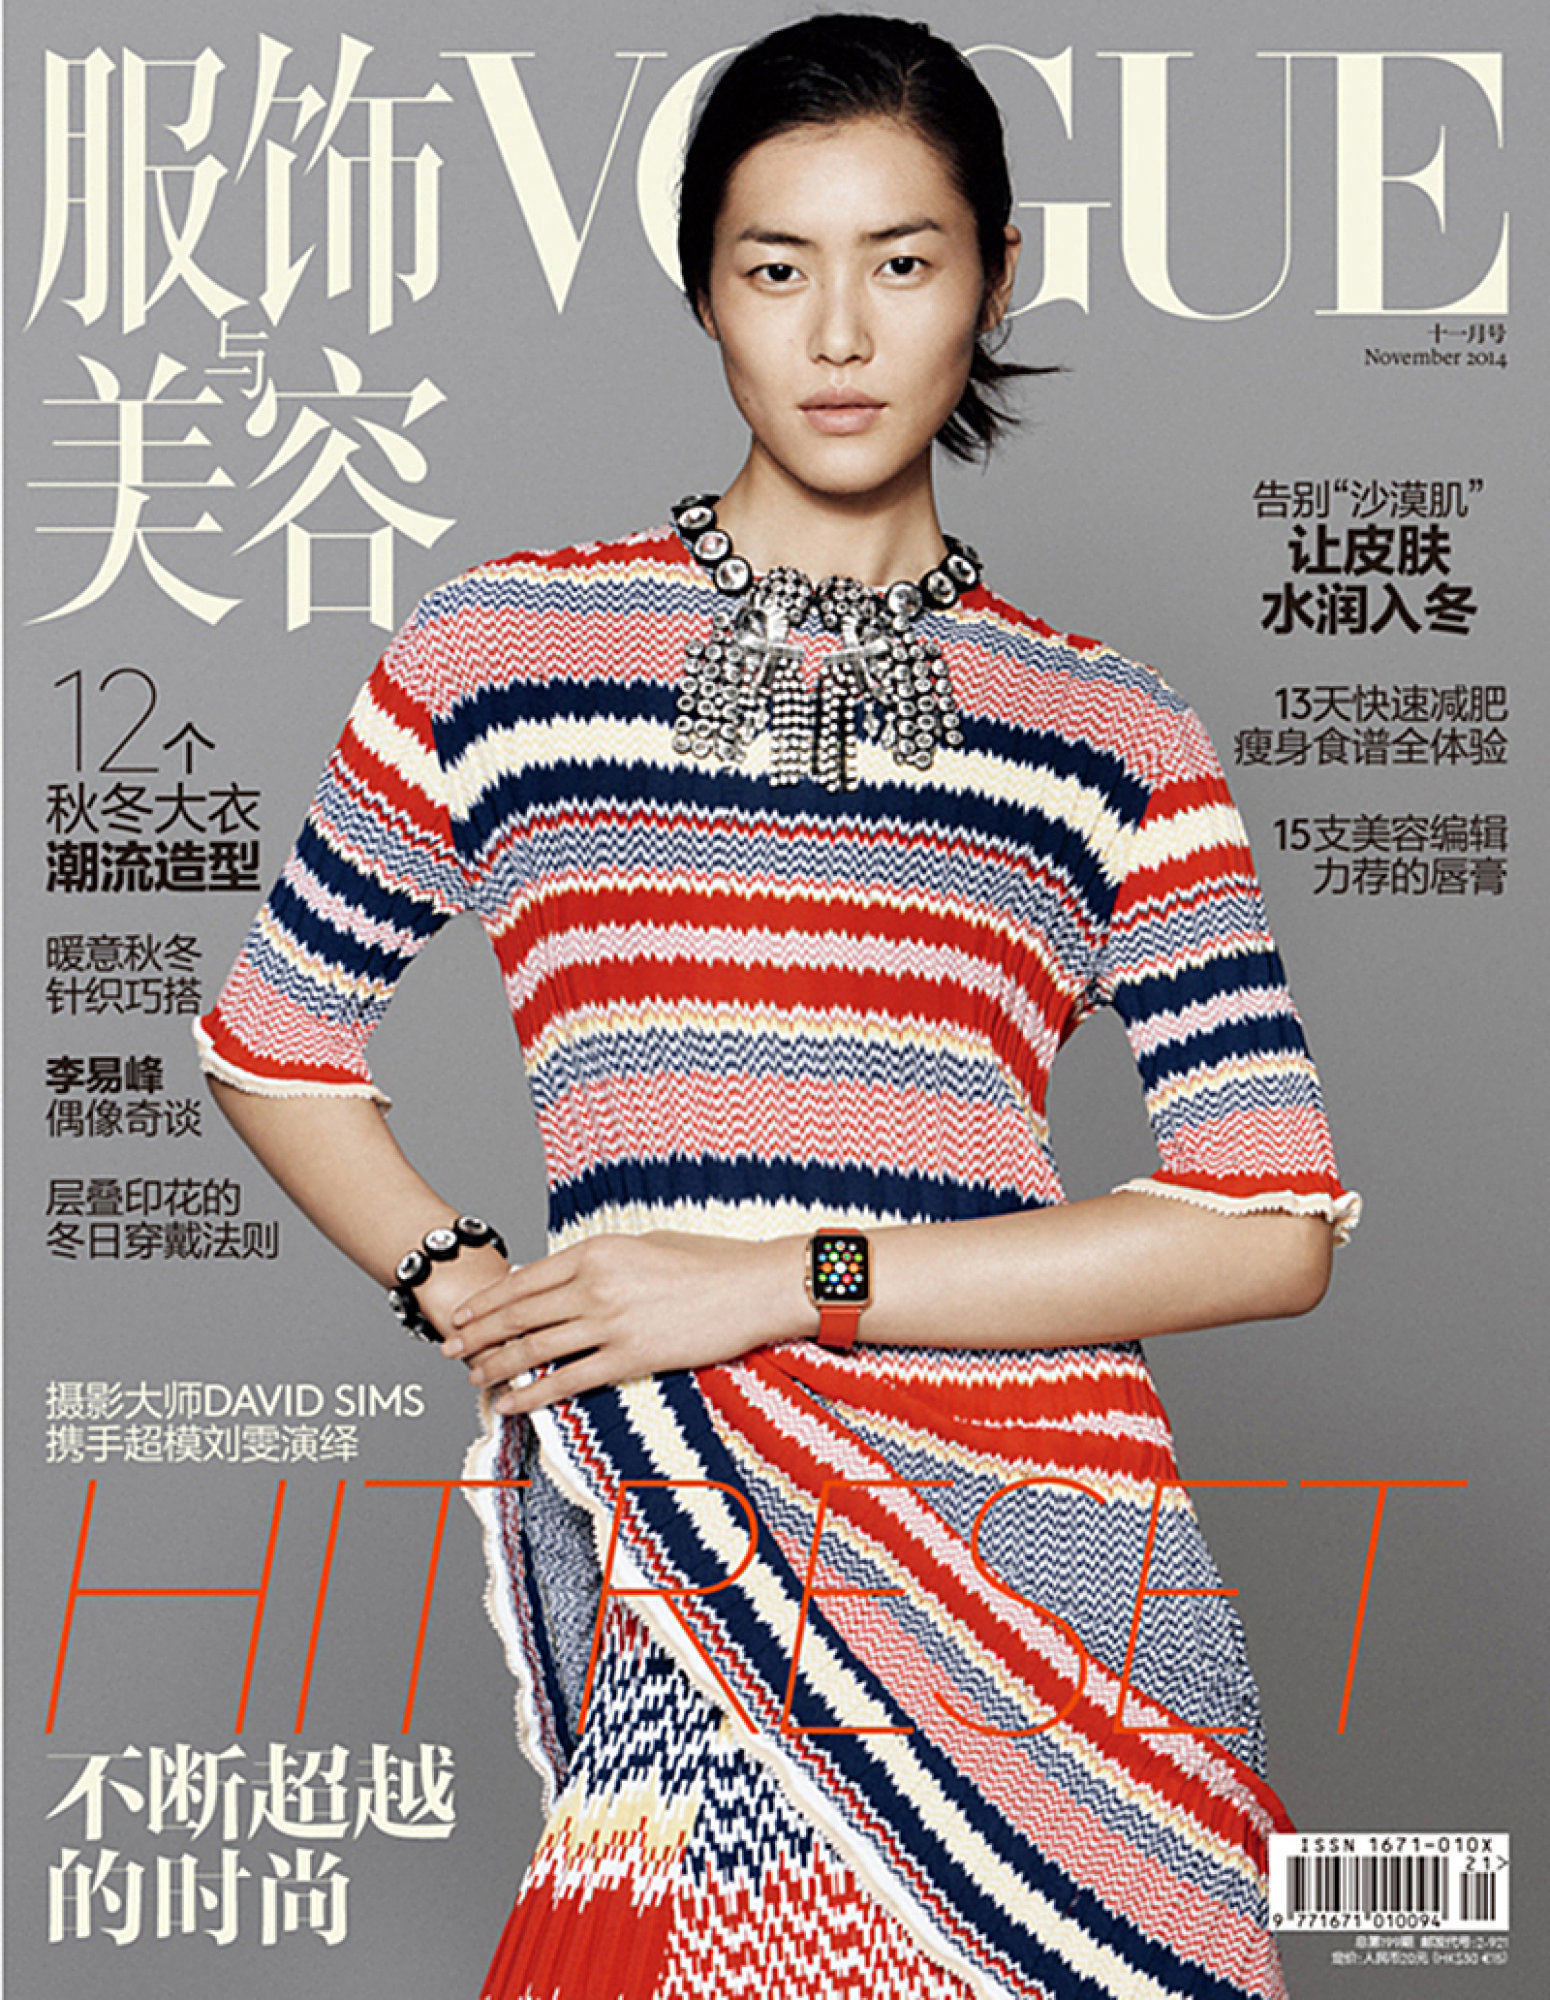 Apple watch vogue china - Apple Watchkit - Out Next Month!